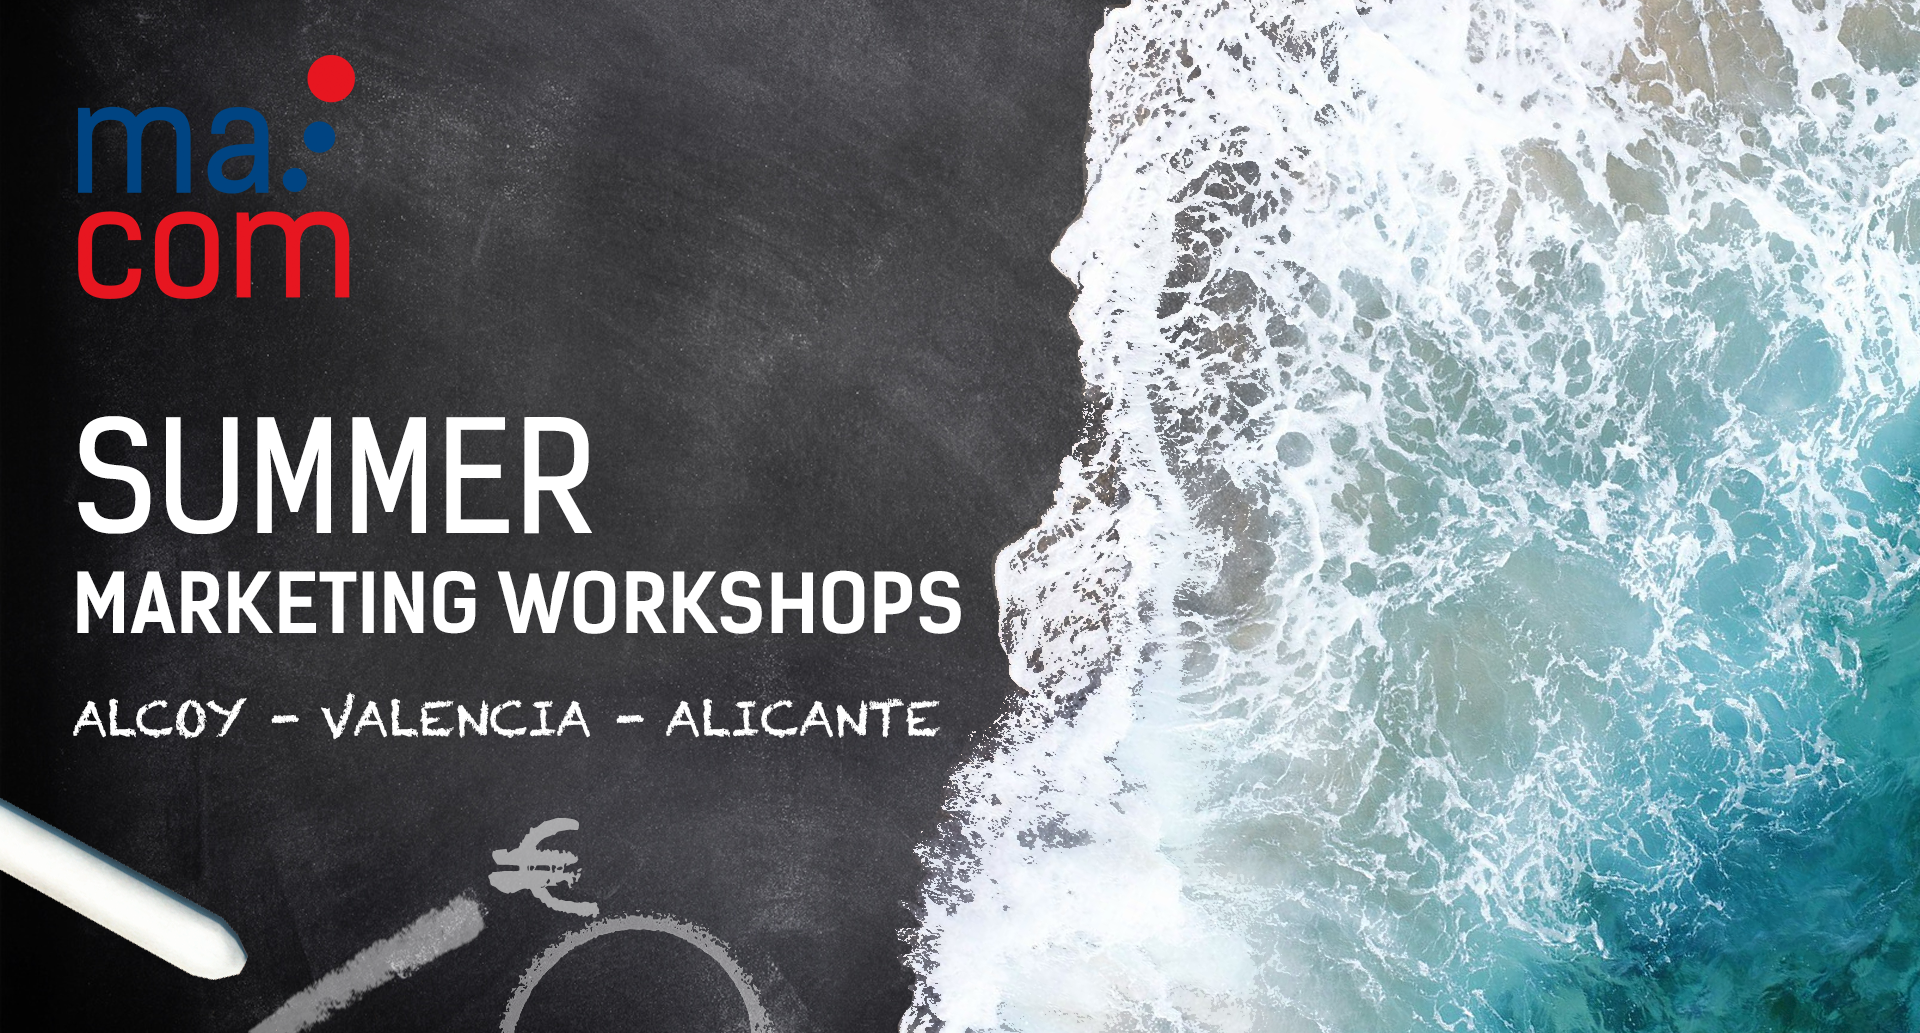 Eventos MACOM UPV: Summer Marketing Workshops - ALICANTE